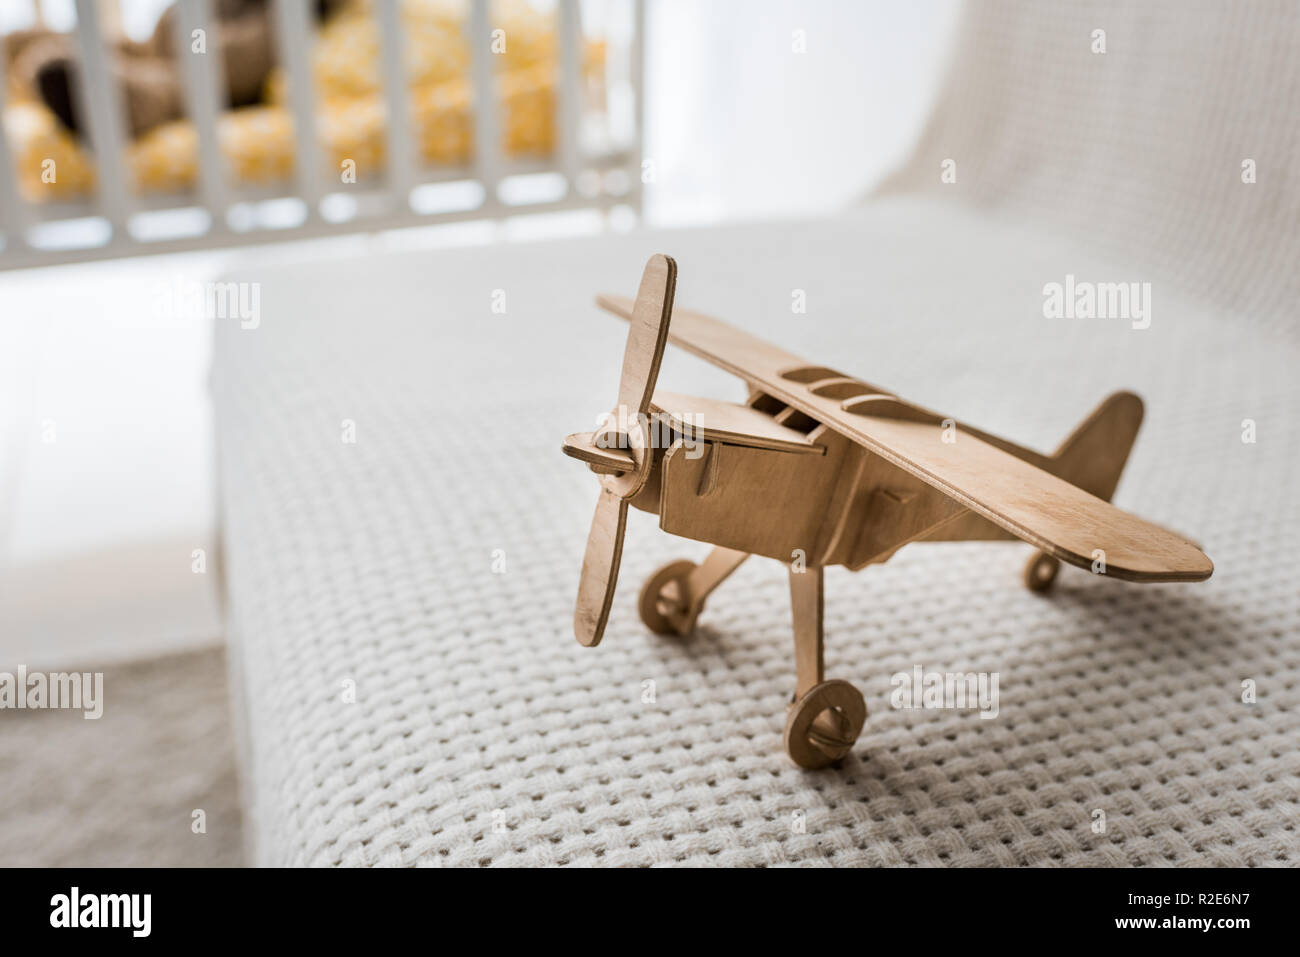 retro wooden toy plane on sofa in nursery room - Stock Image